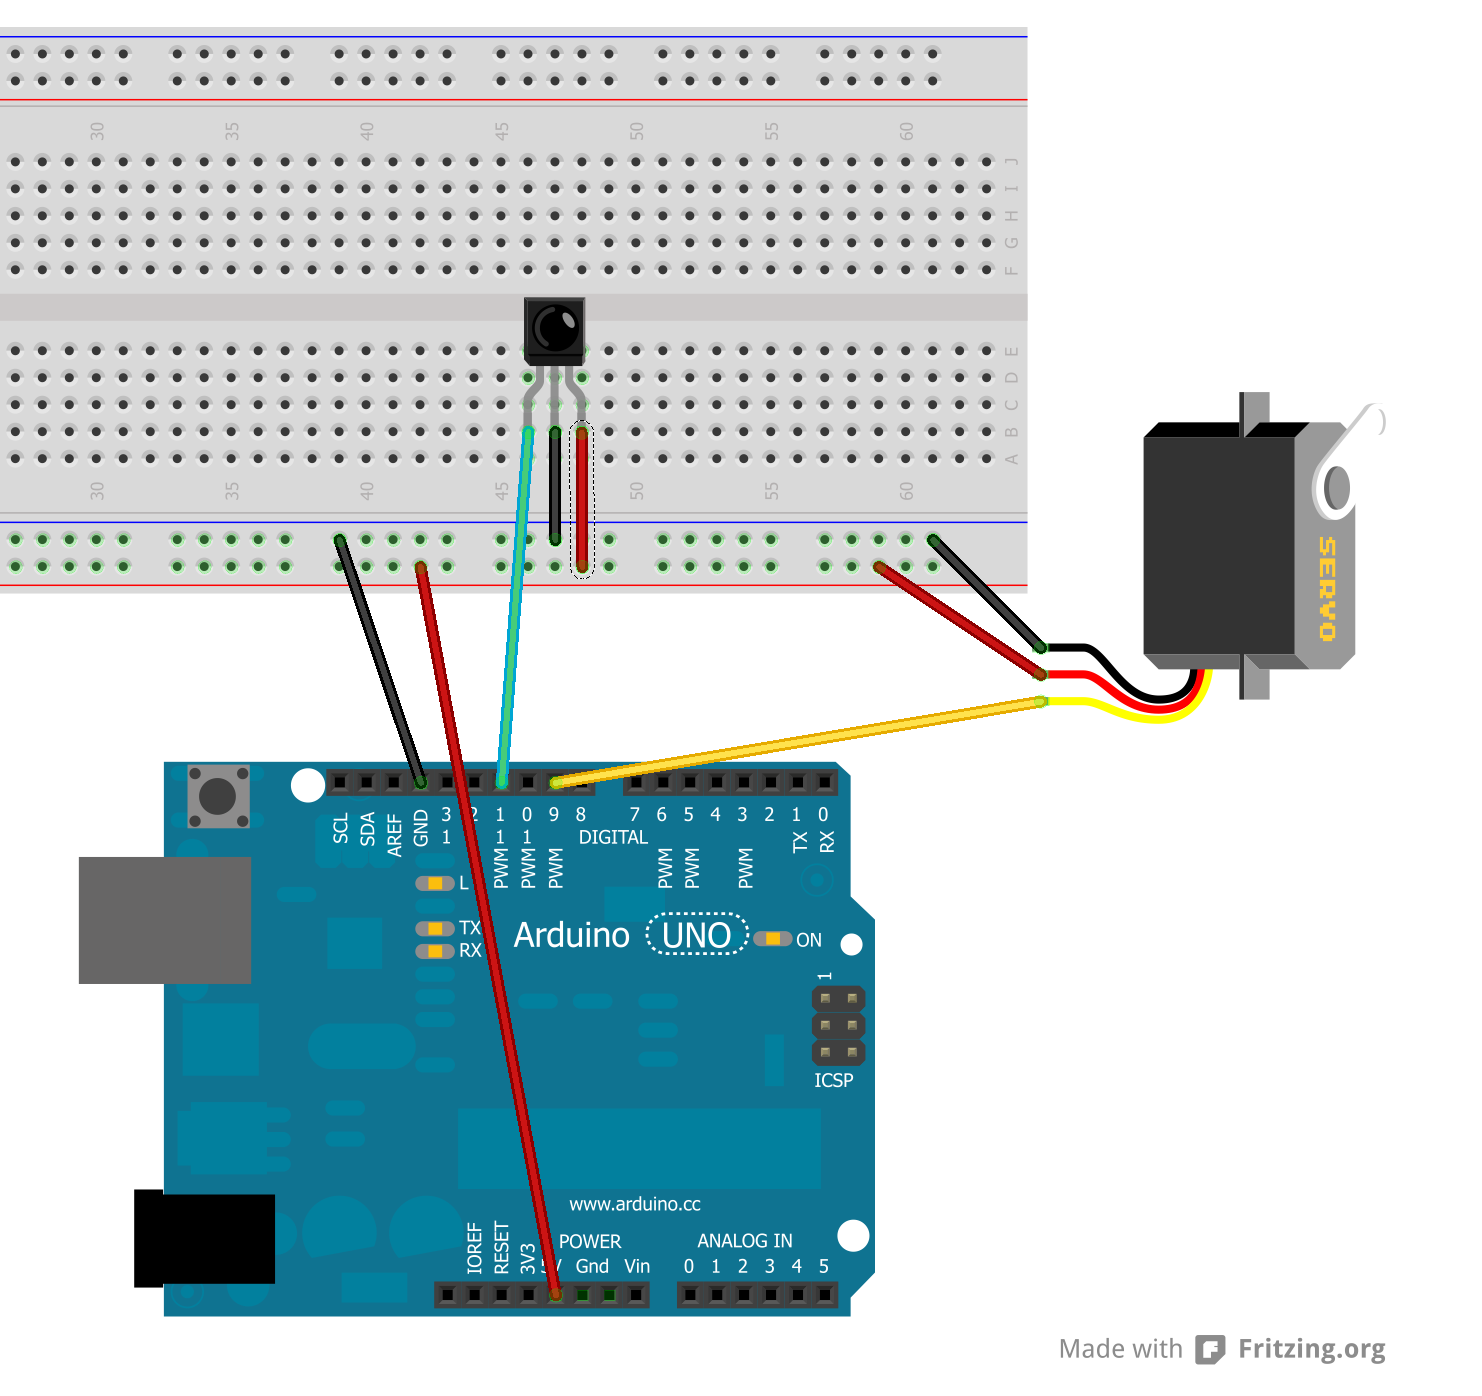 Arduino Motor Control Circuit Additionally Servo Schematic Testandmeasurement Transistoranddiodetester Mosfetcircuitups Irlib Tutorial Part 2 Controlling A Using An Ir Remote Cy S Rh Tech Cyborg5